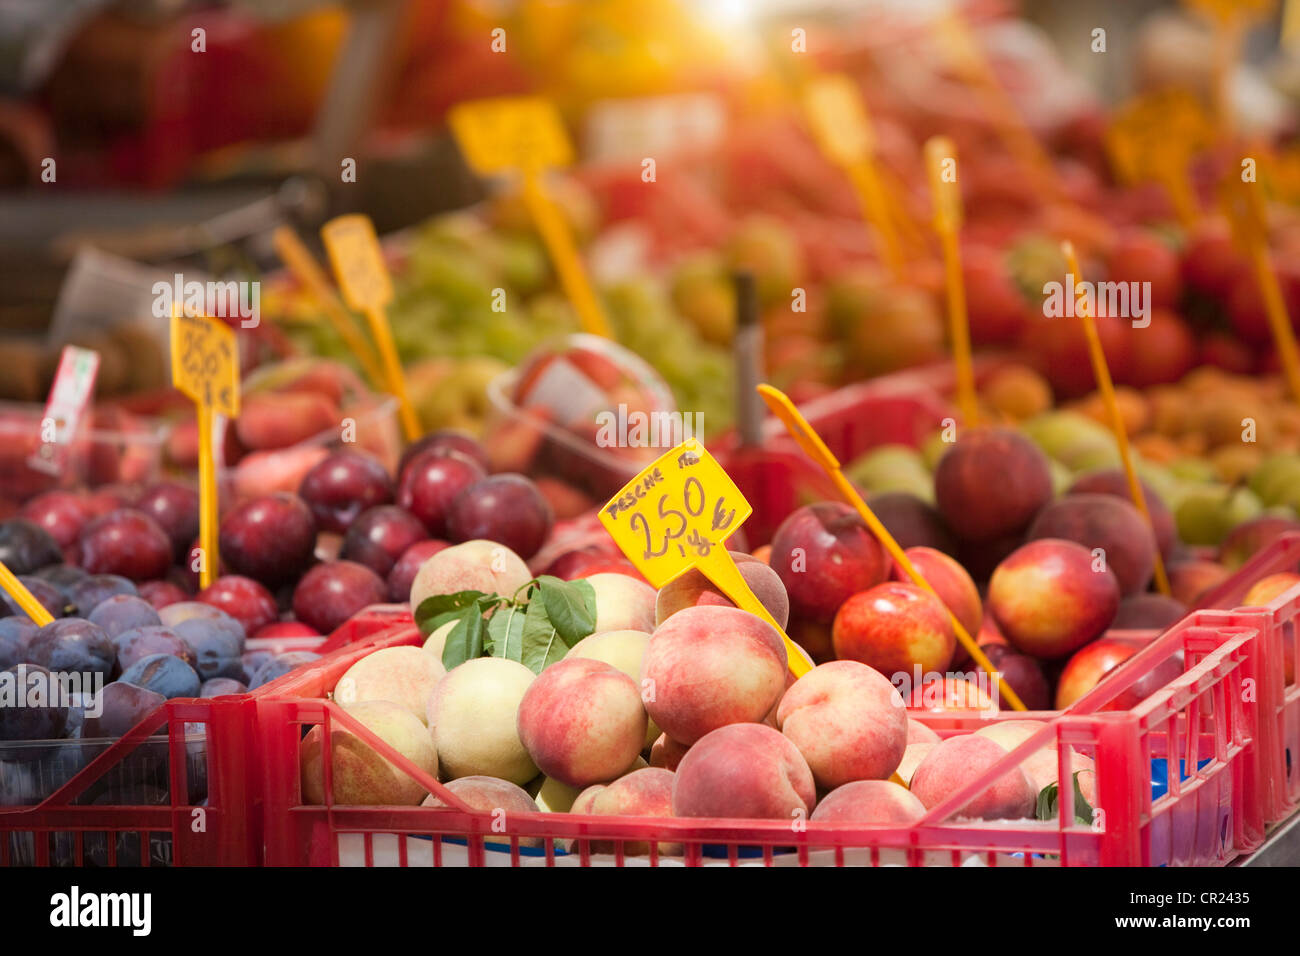 Close up of produce for sale - Stock Image